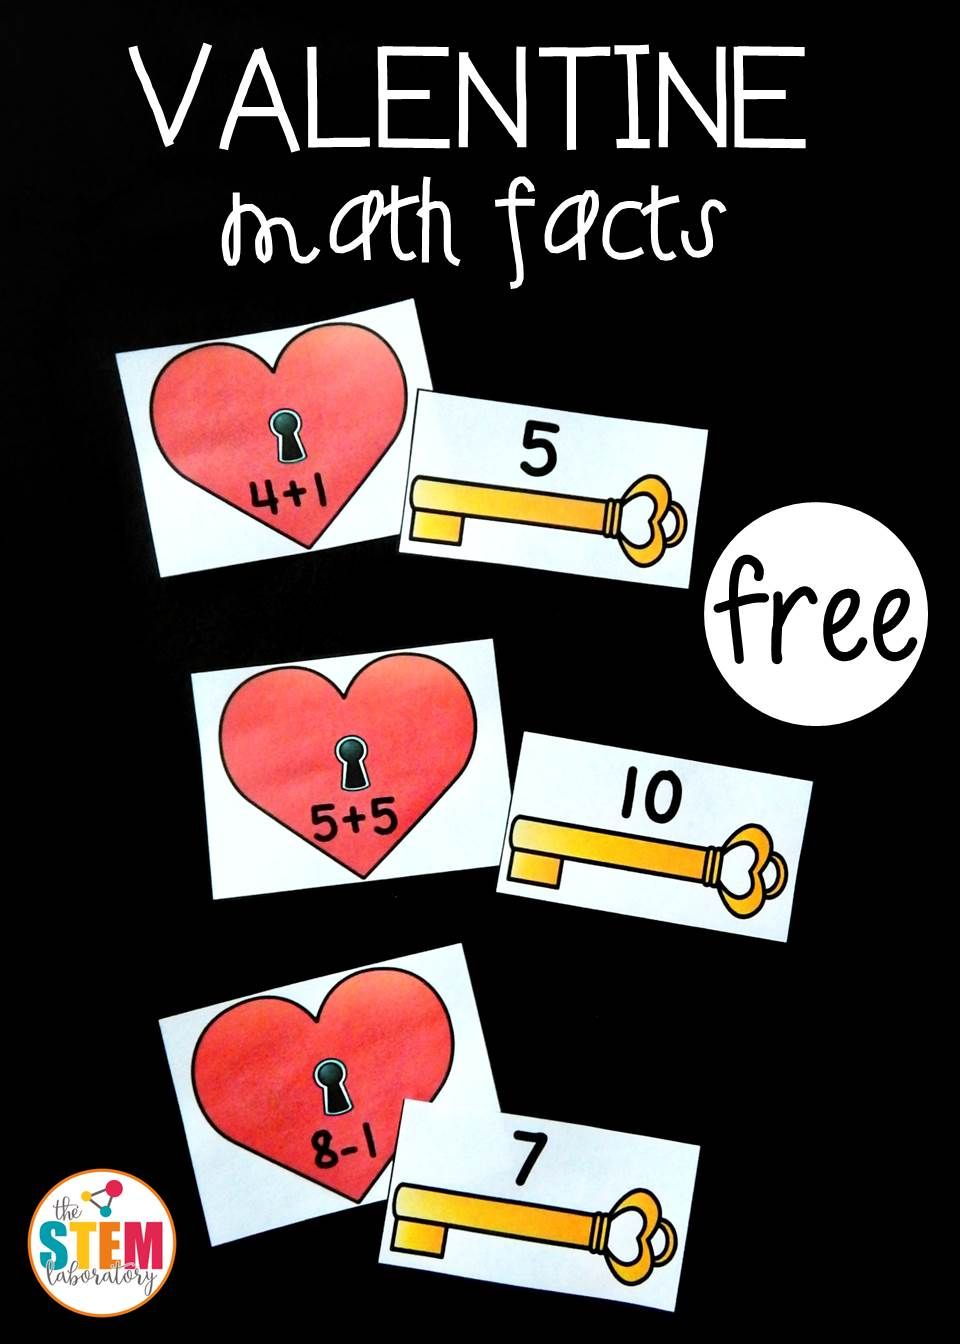 valentine math fact match | valentines ideas | pinterest | math